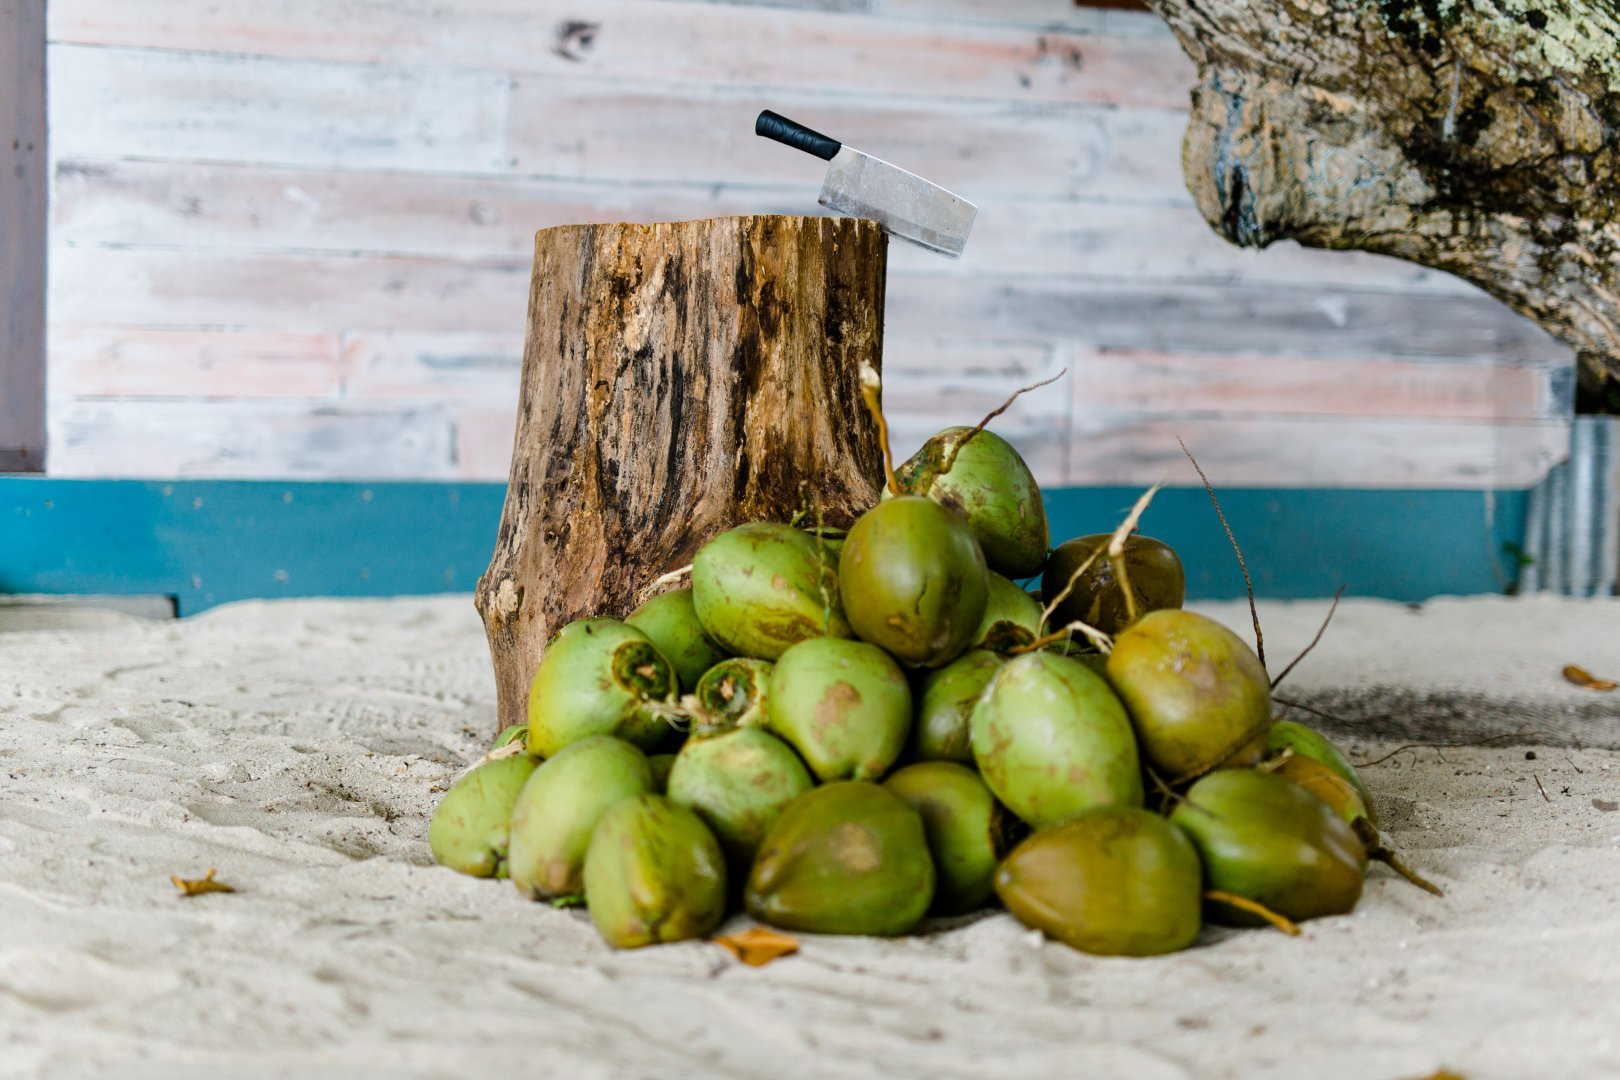 Natural foods Plant Coconut Fruit Local food Food Tree Produce Still life photography